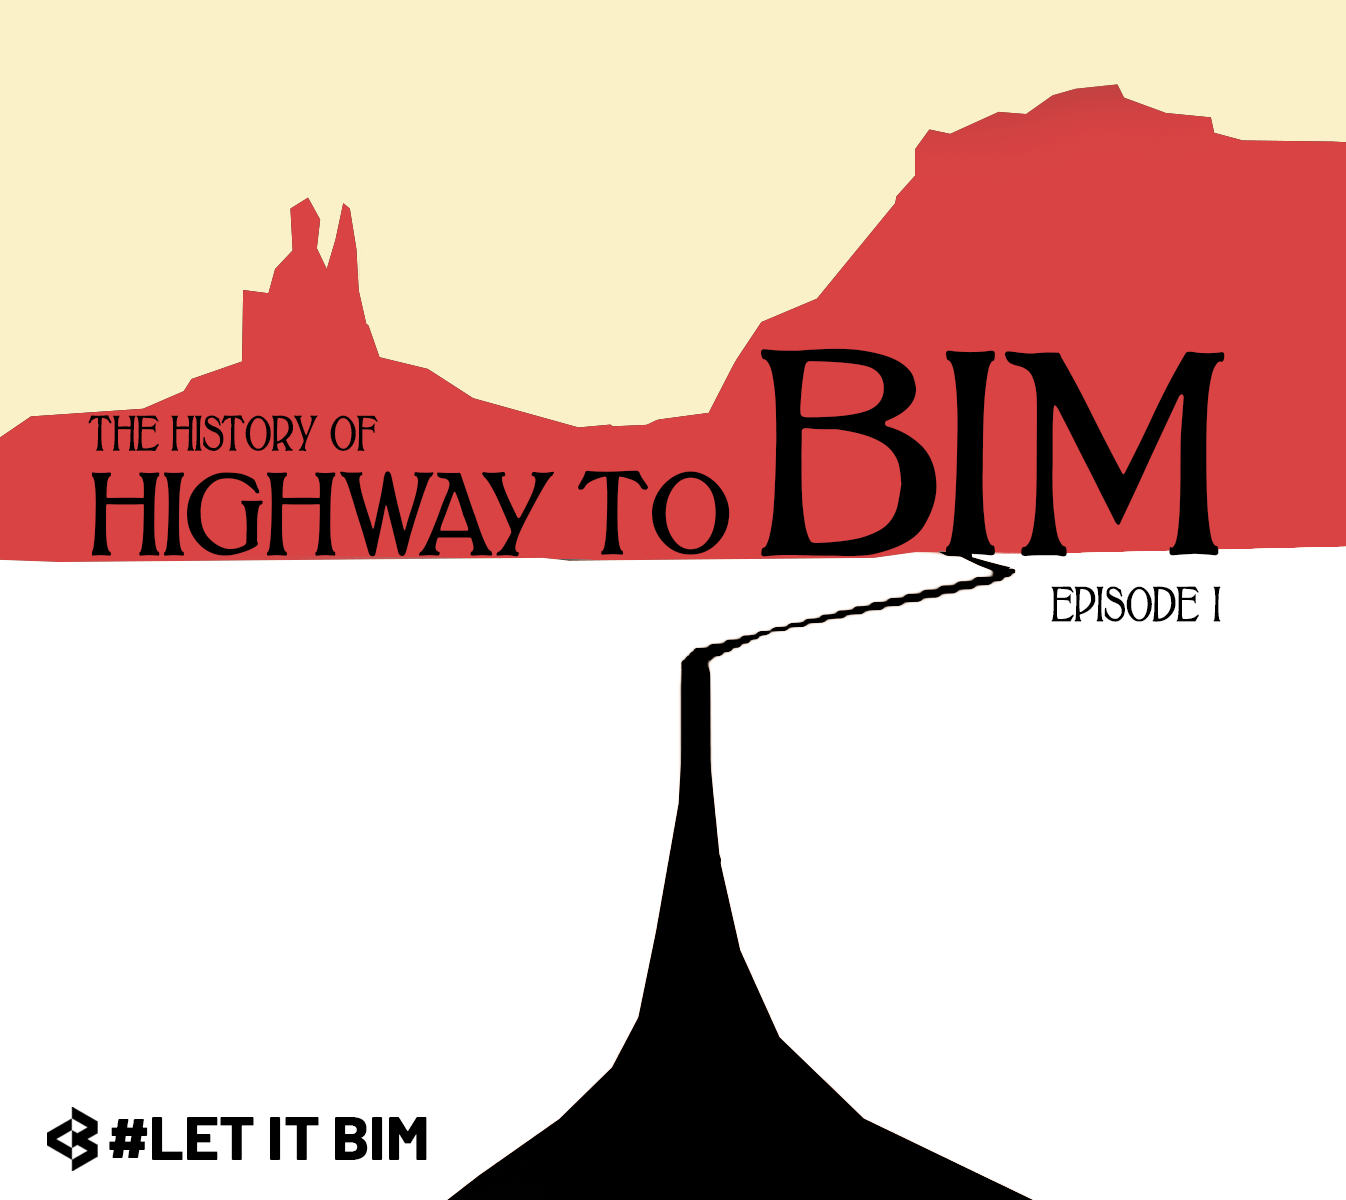 HIGHWAY TO BIM / La historia de BIM Episodio I